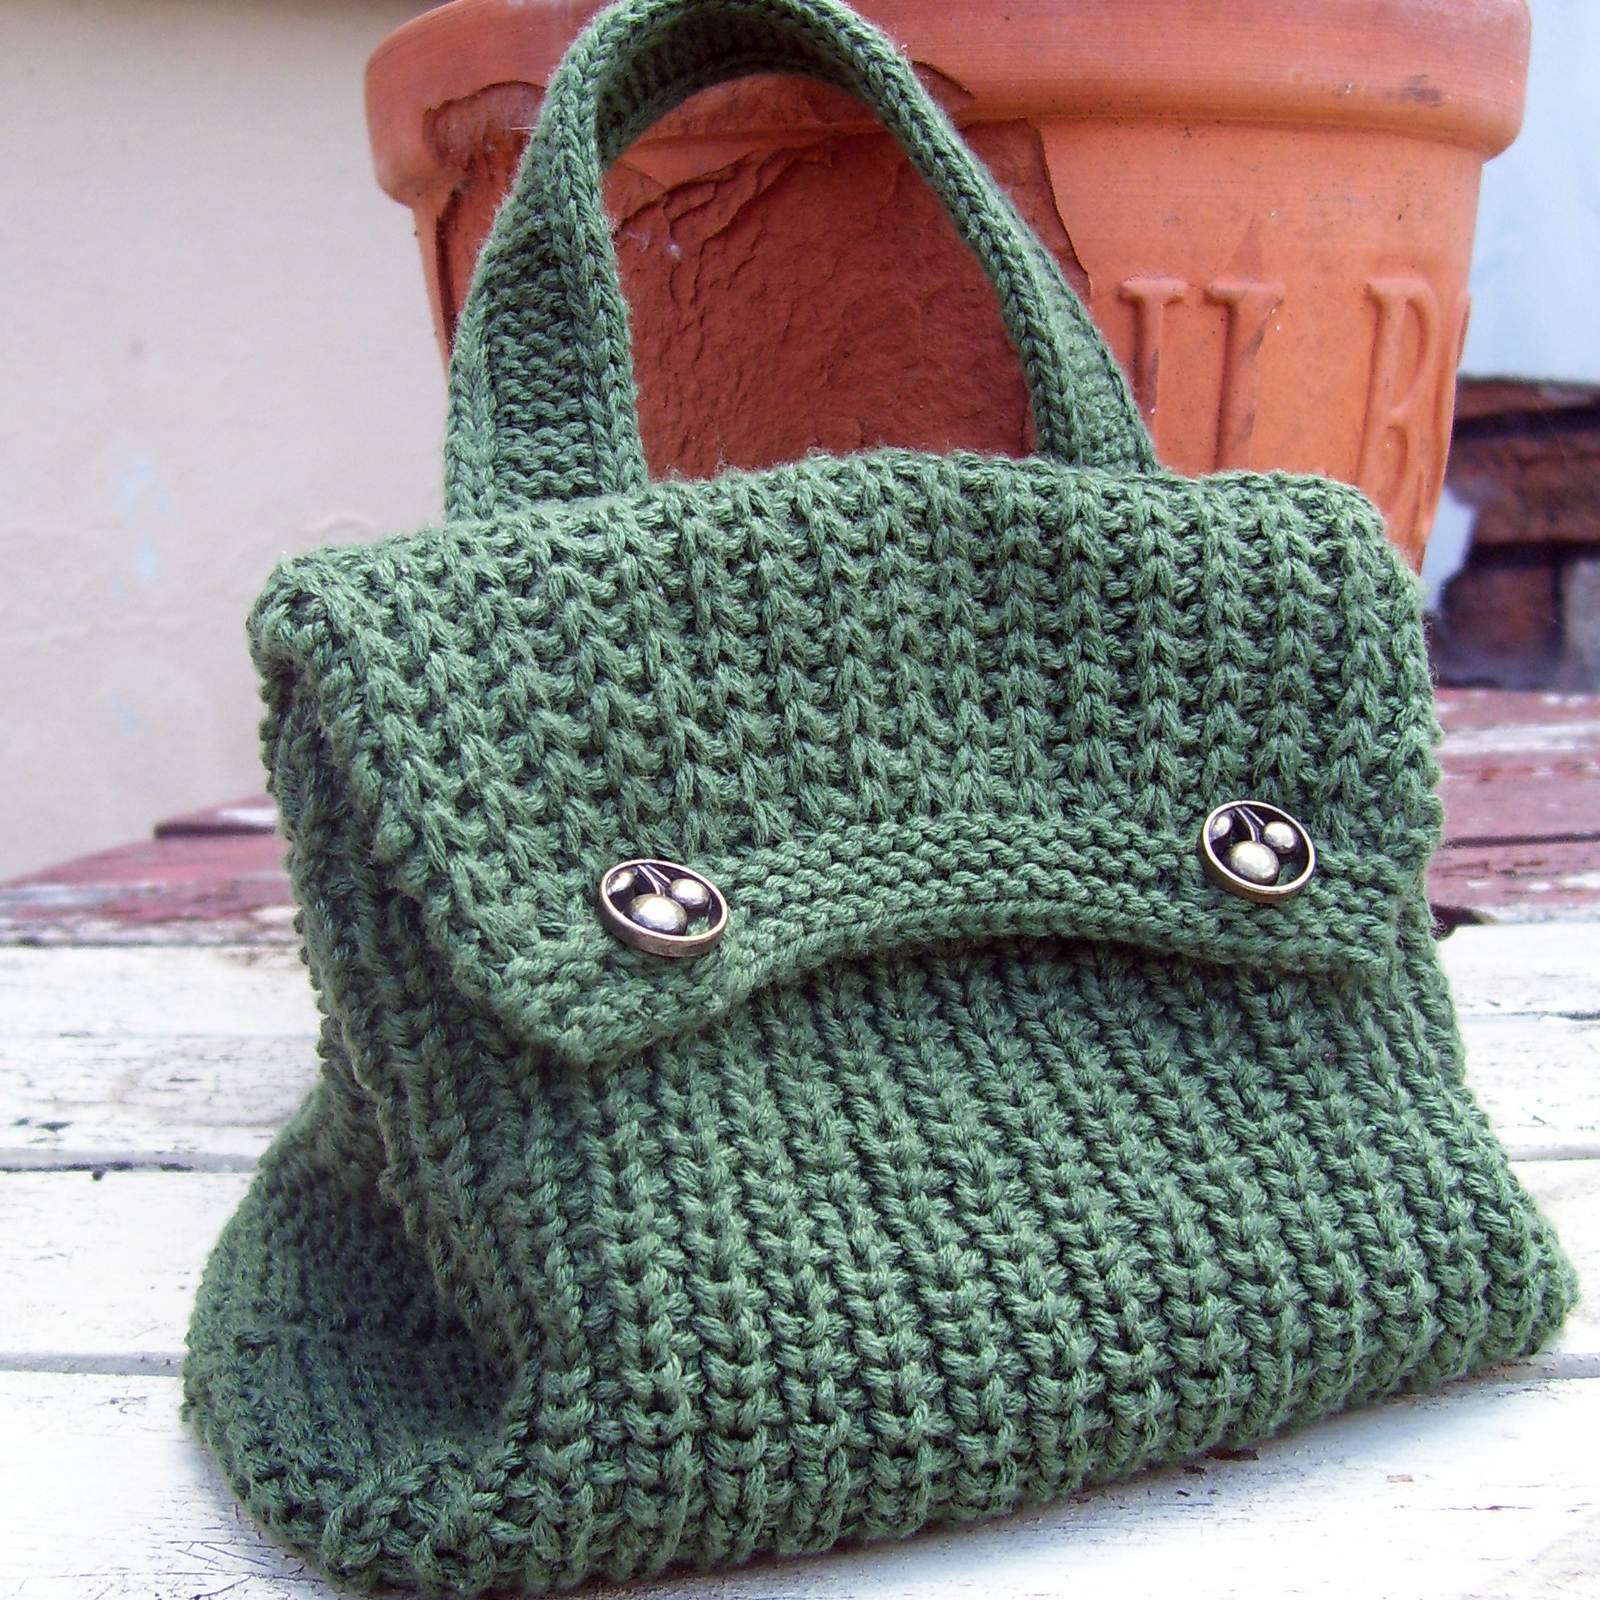 Free Crochet Bag : Over 200 Free Knitted Bags, Purses and Totes Knitting Patterns